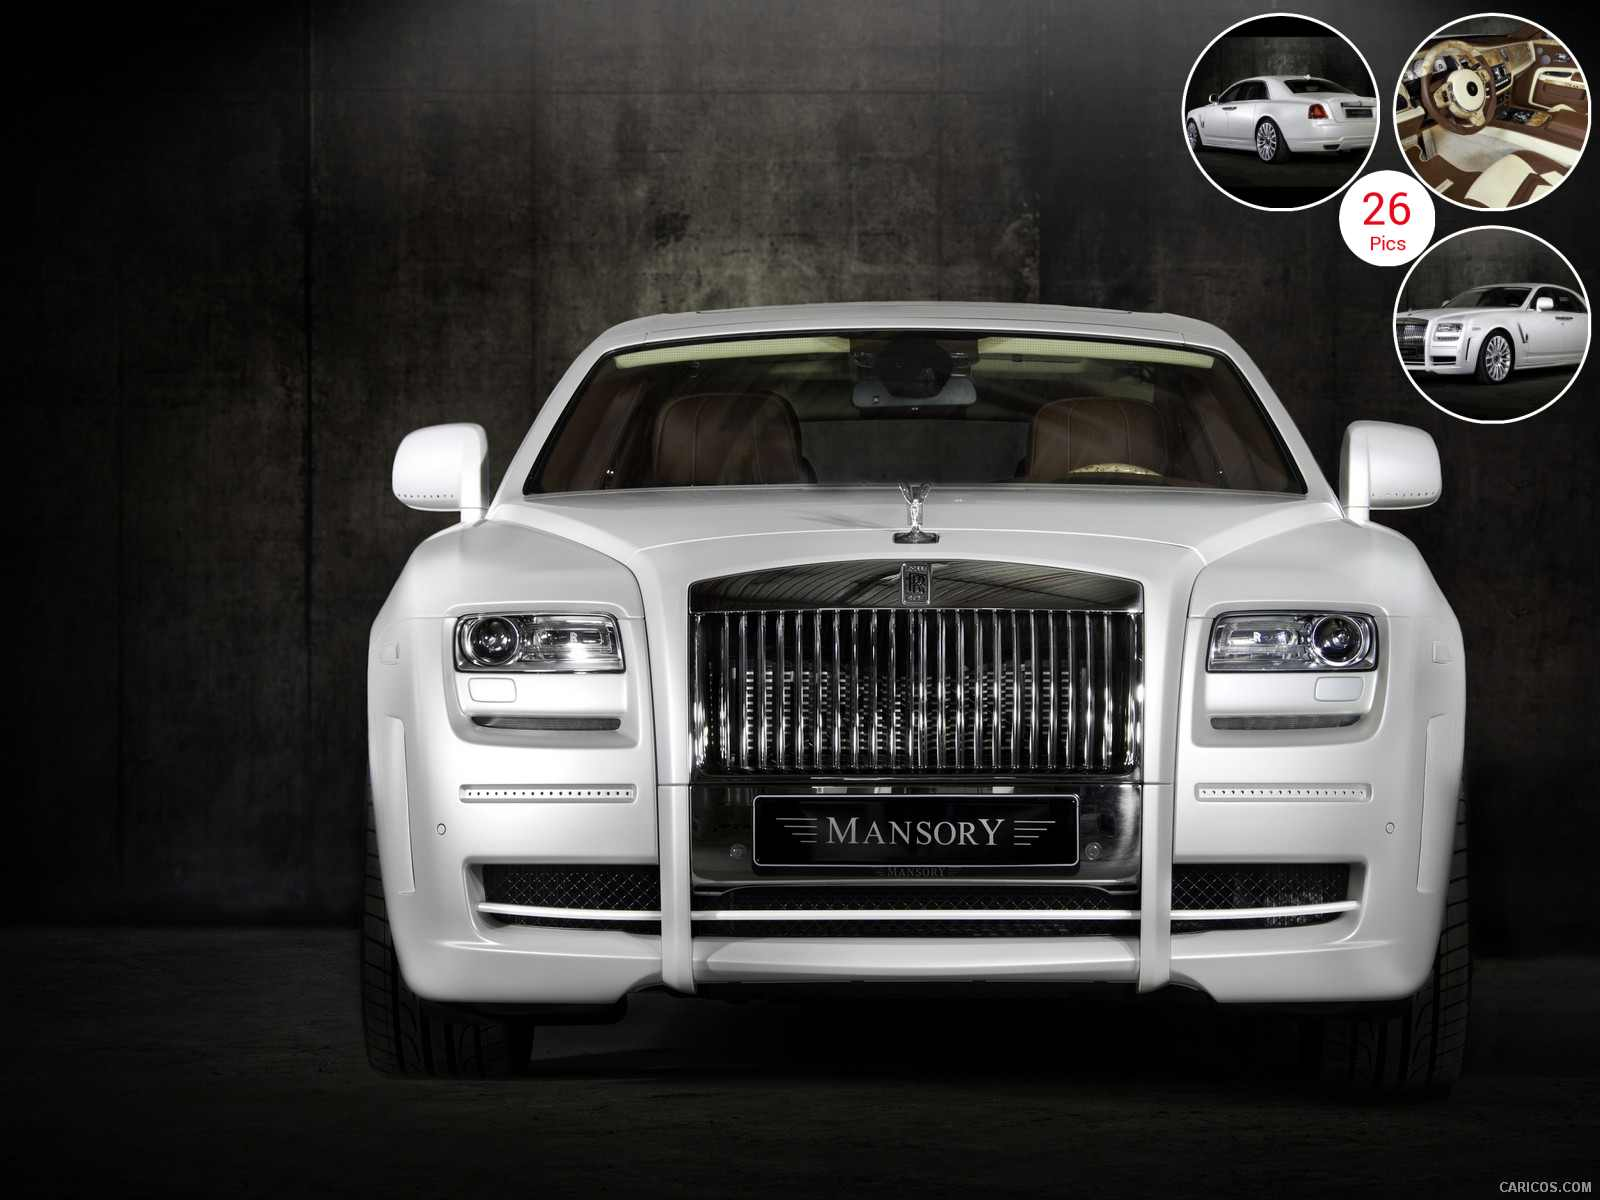 Mansory Rolls-Royce Ghost White - Front | Wallpaper #5